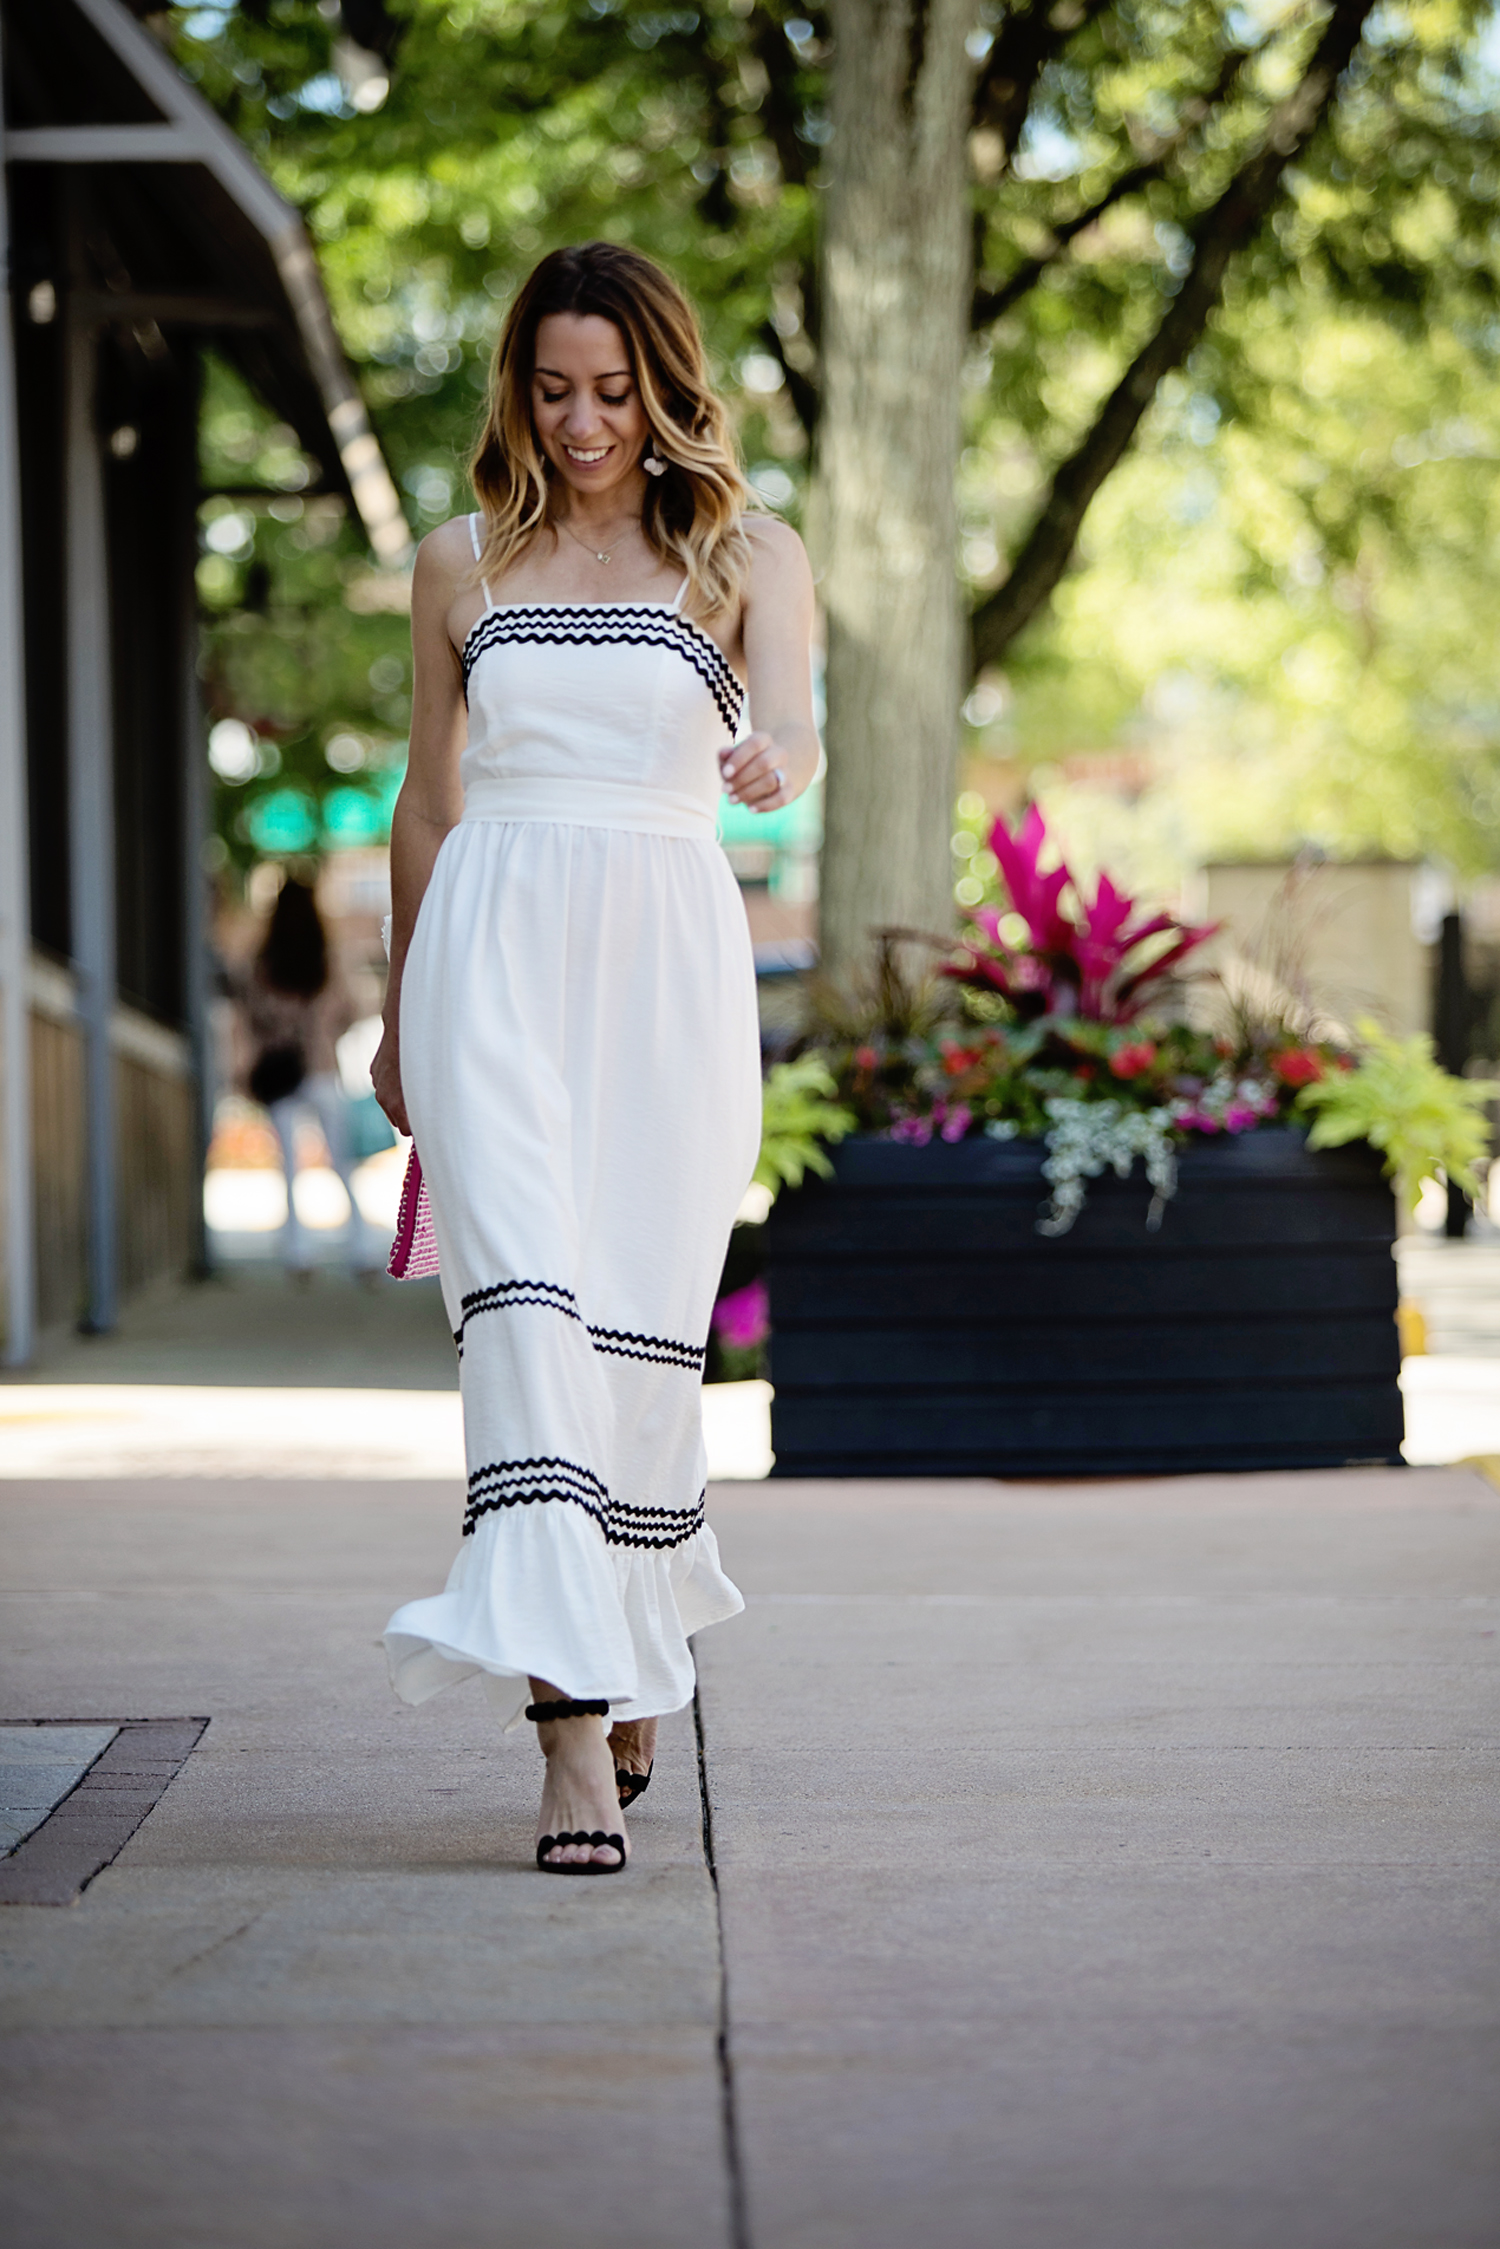 The Motherchic wearing cece maxi dress